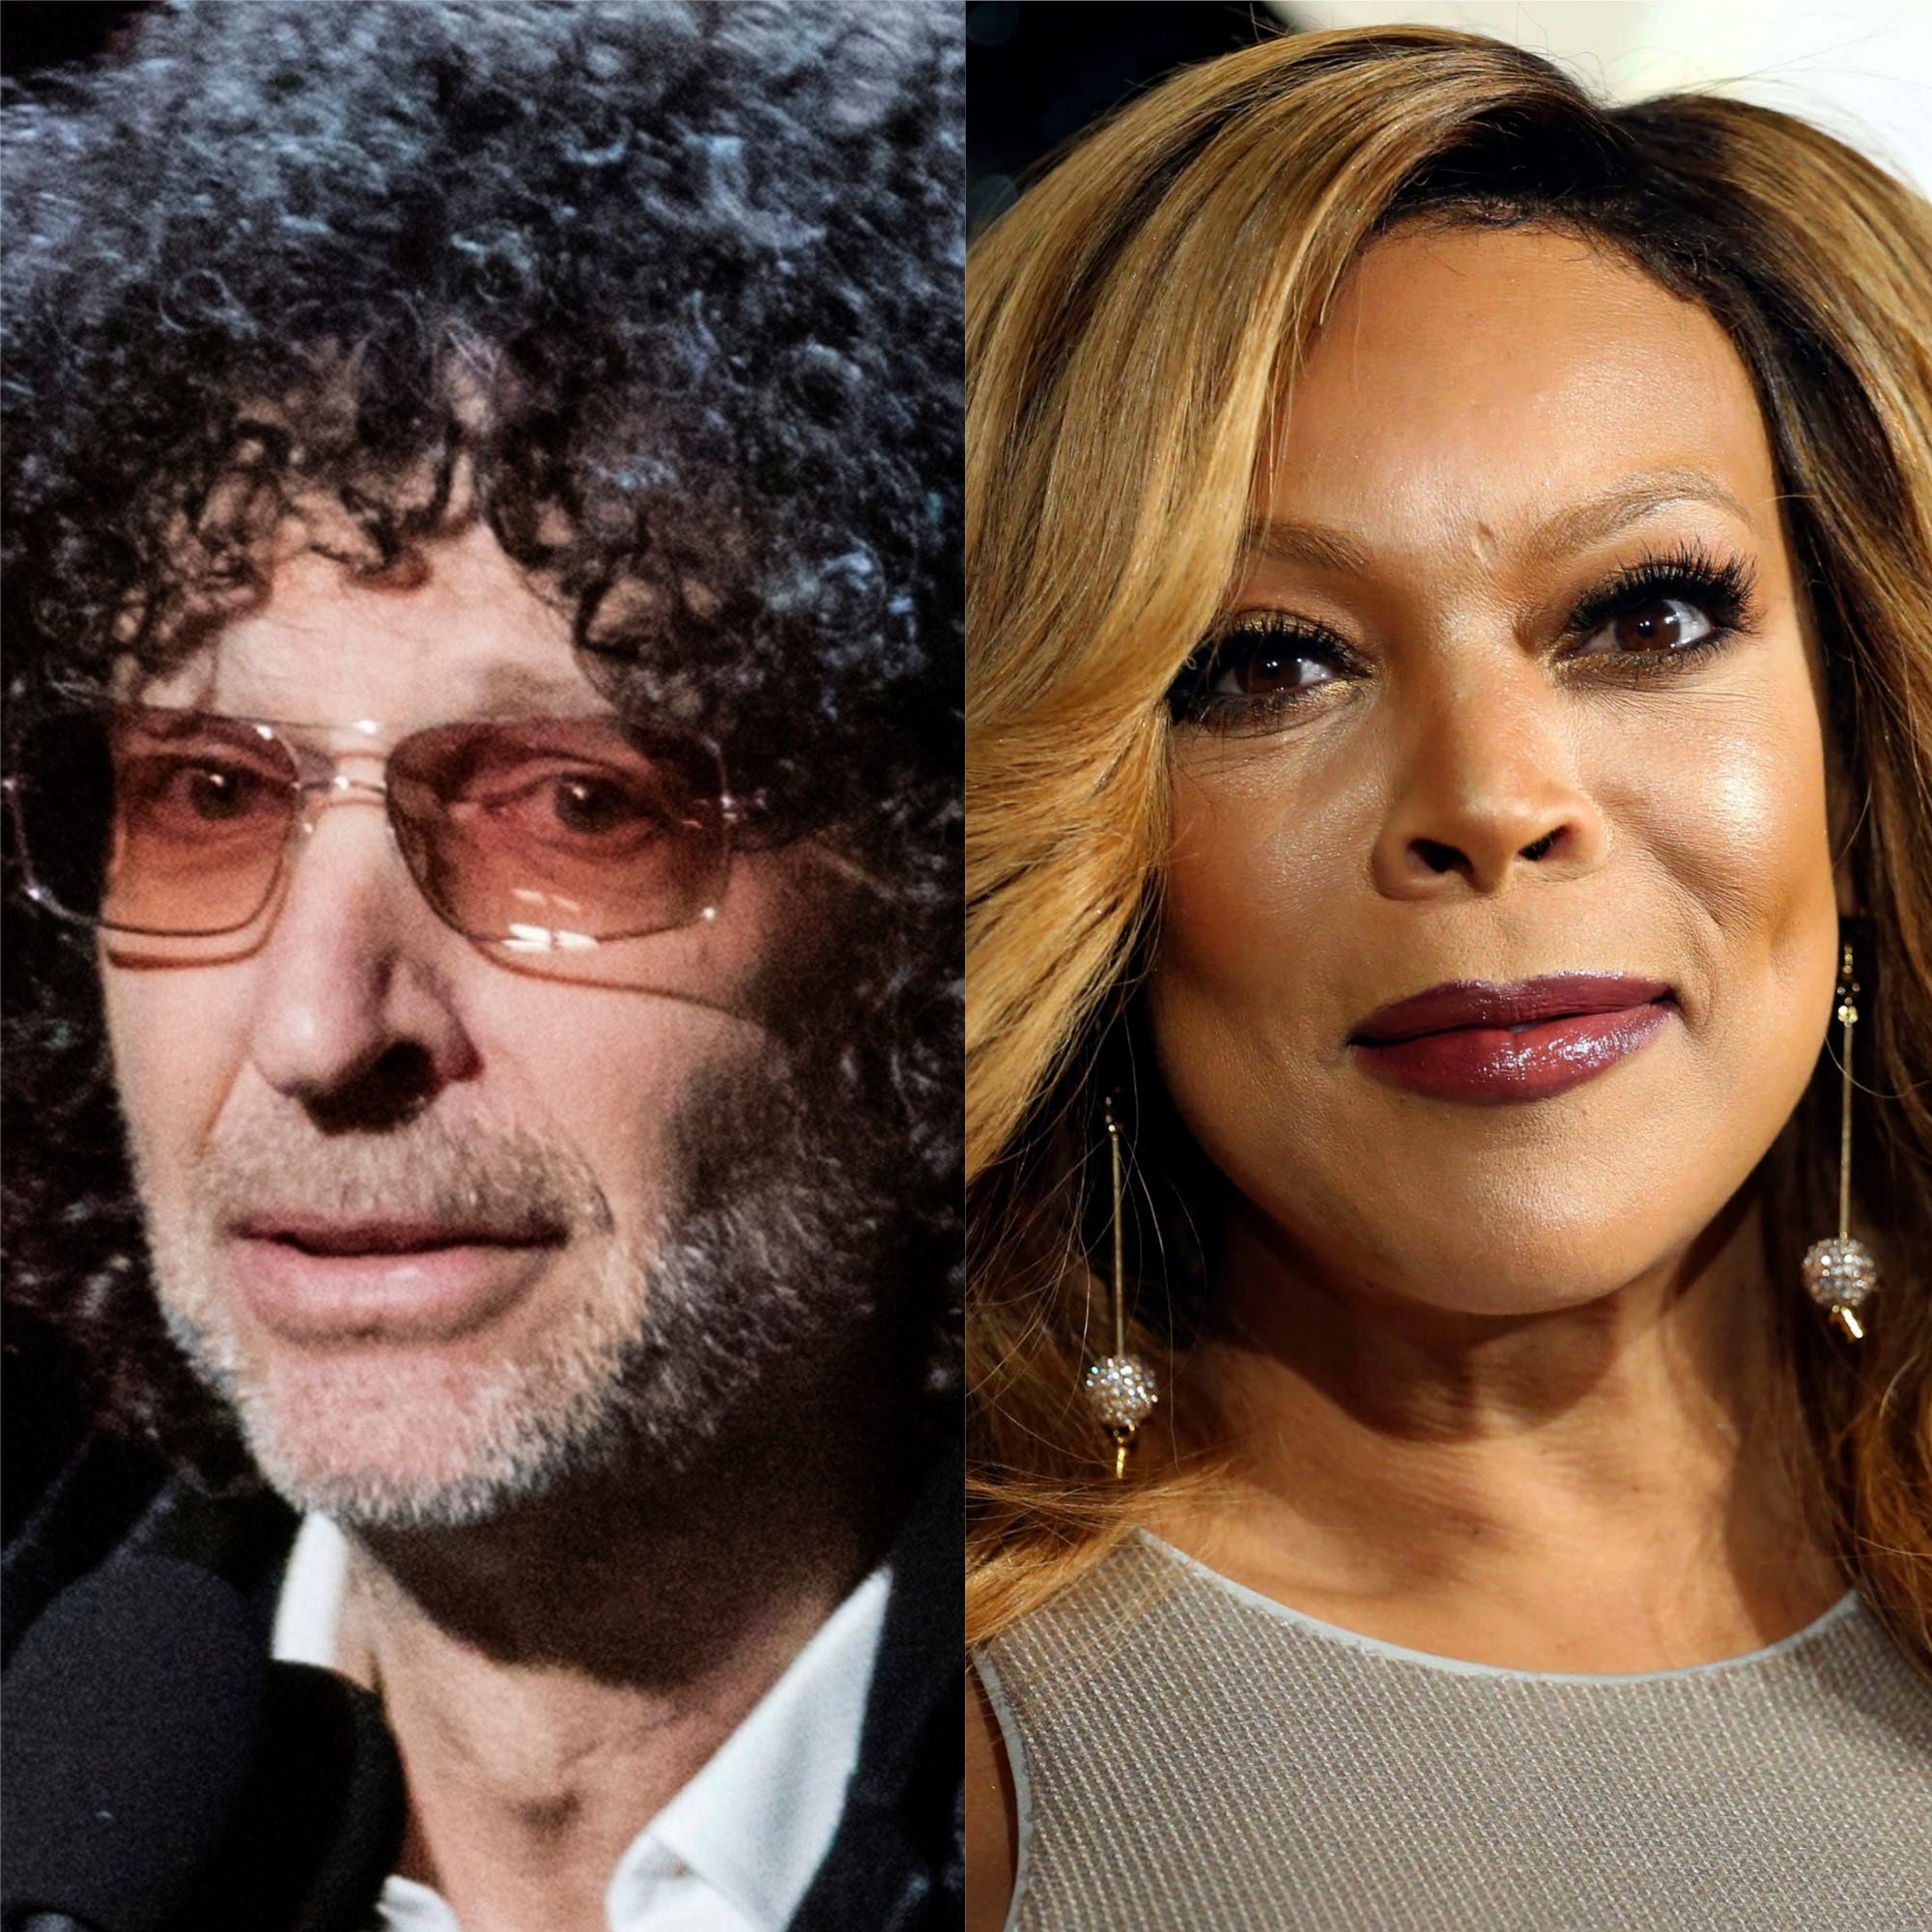 Howard Stern goes after Wendy Williams: 'Keep your opinion to yourself'